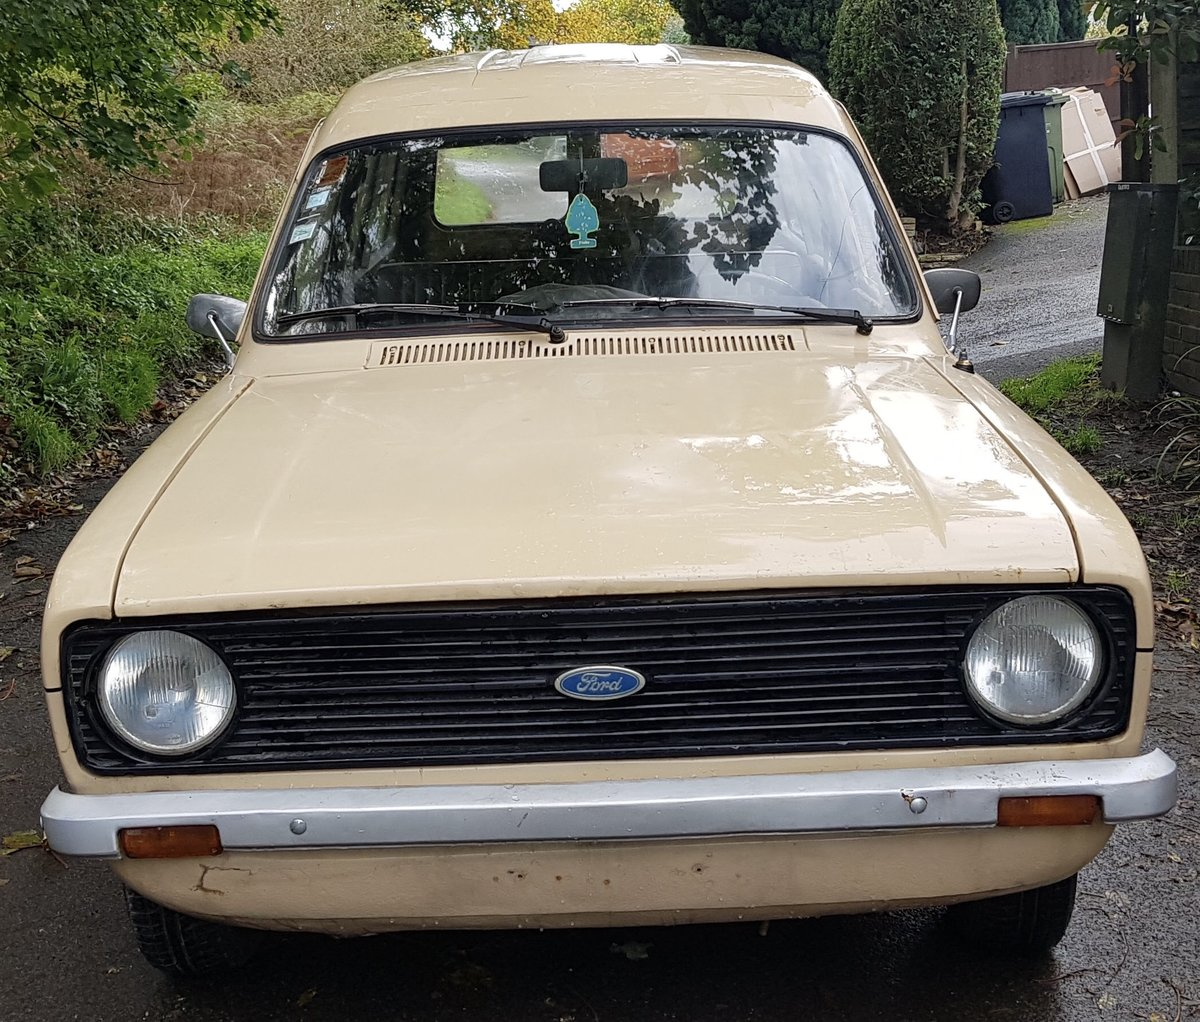 1975 Mk2 Ford Escort 30 Van For Sale (picture 1 of 6)